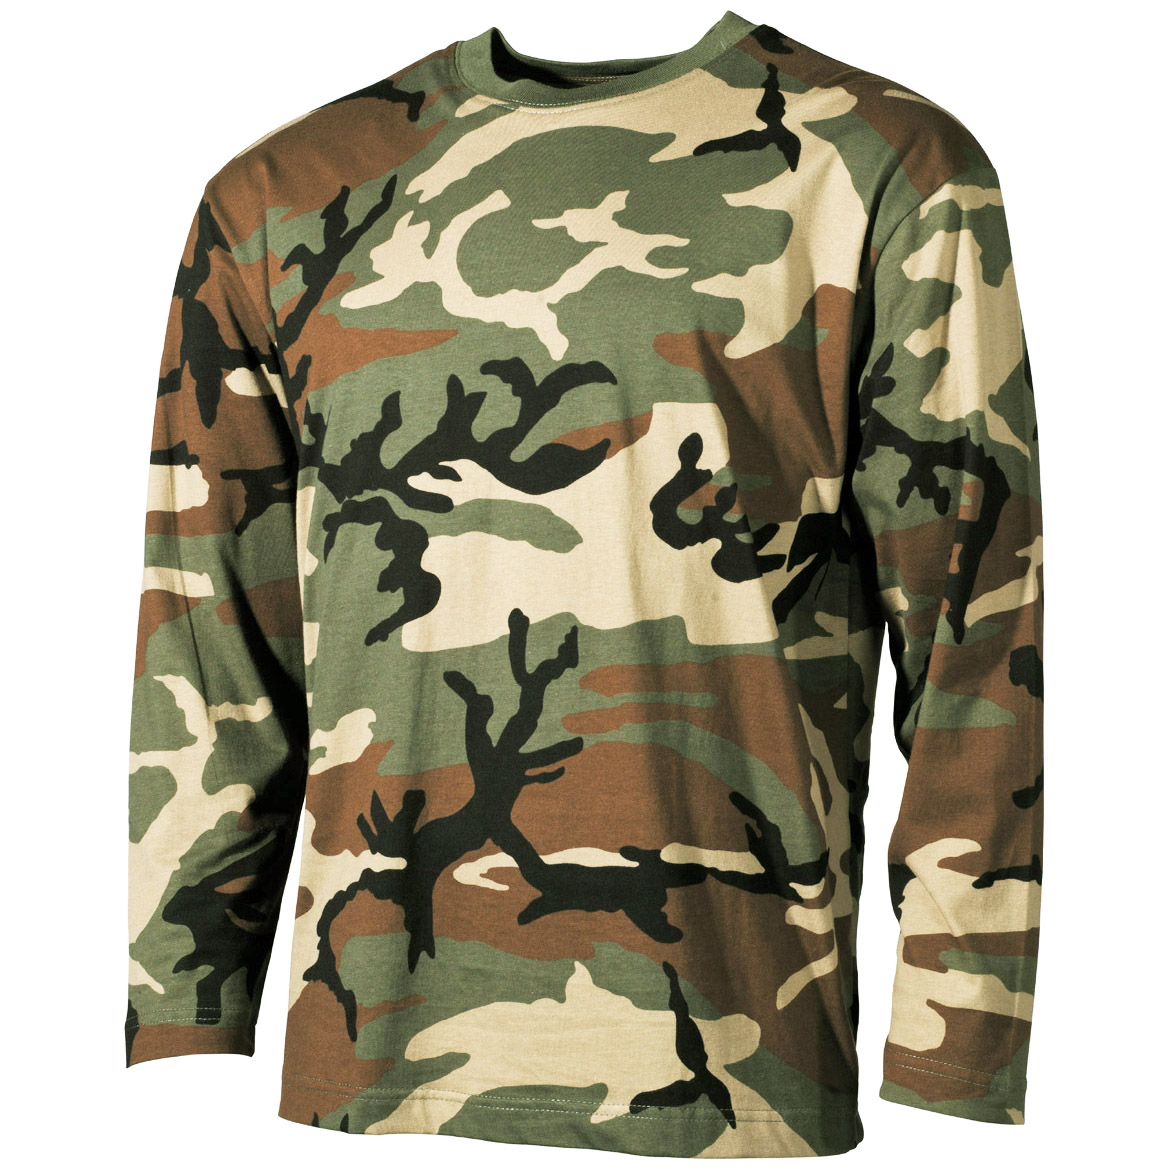 0ea87030 Details about US Style Combat Army Military Mens Long Sleeve T-Shirt  Woodland Camouflage S-XXL